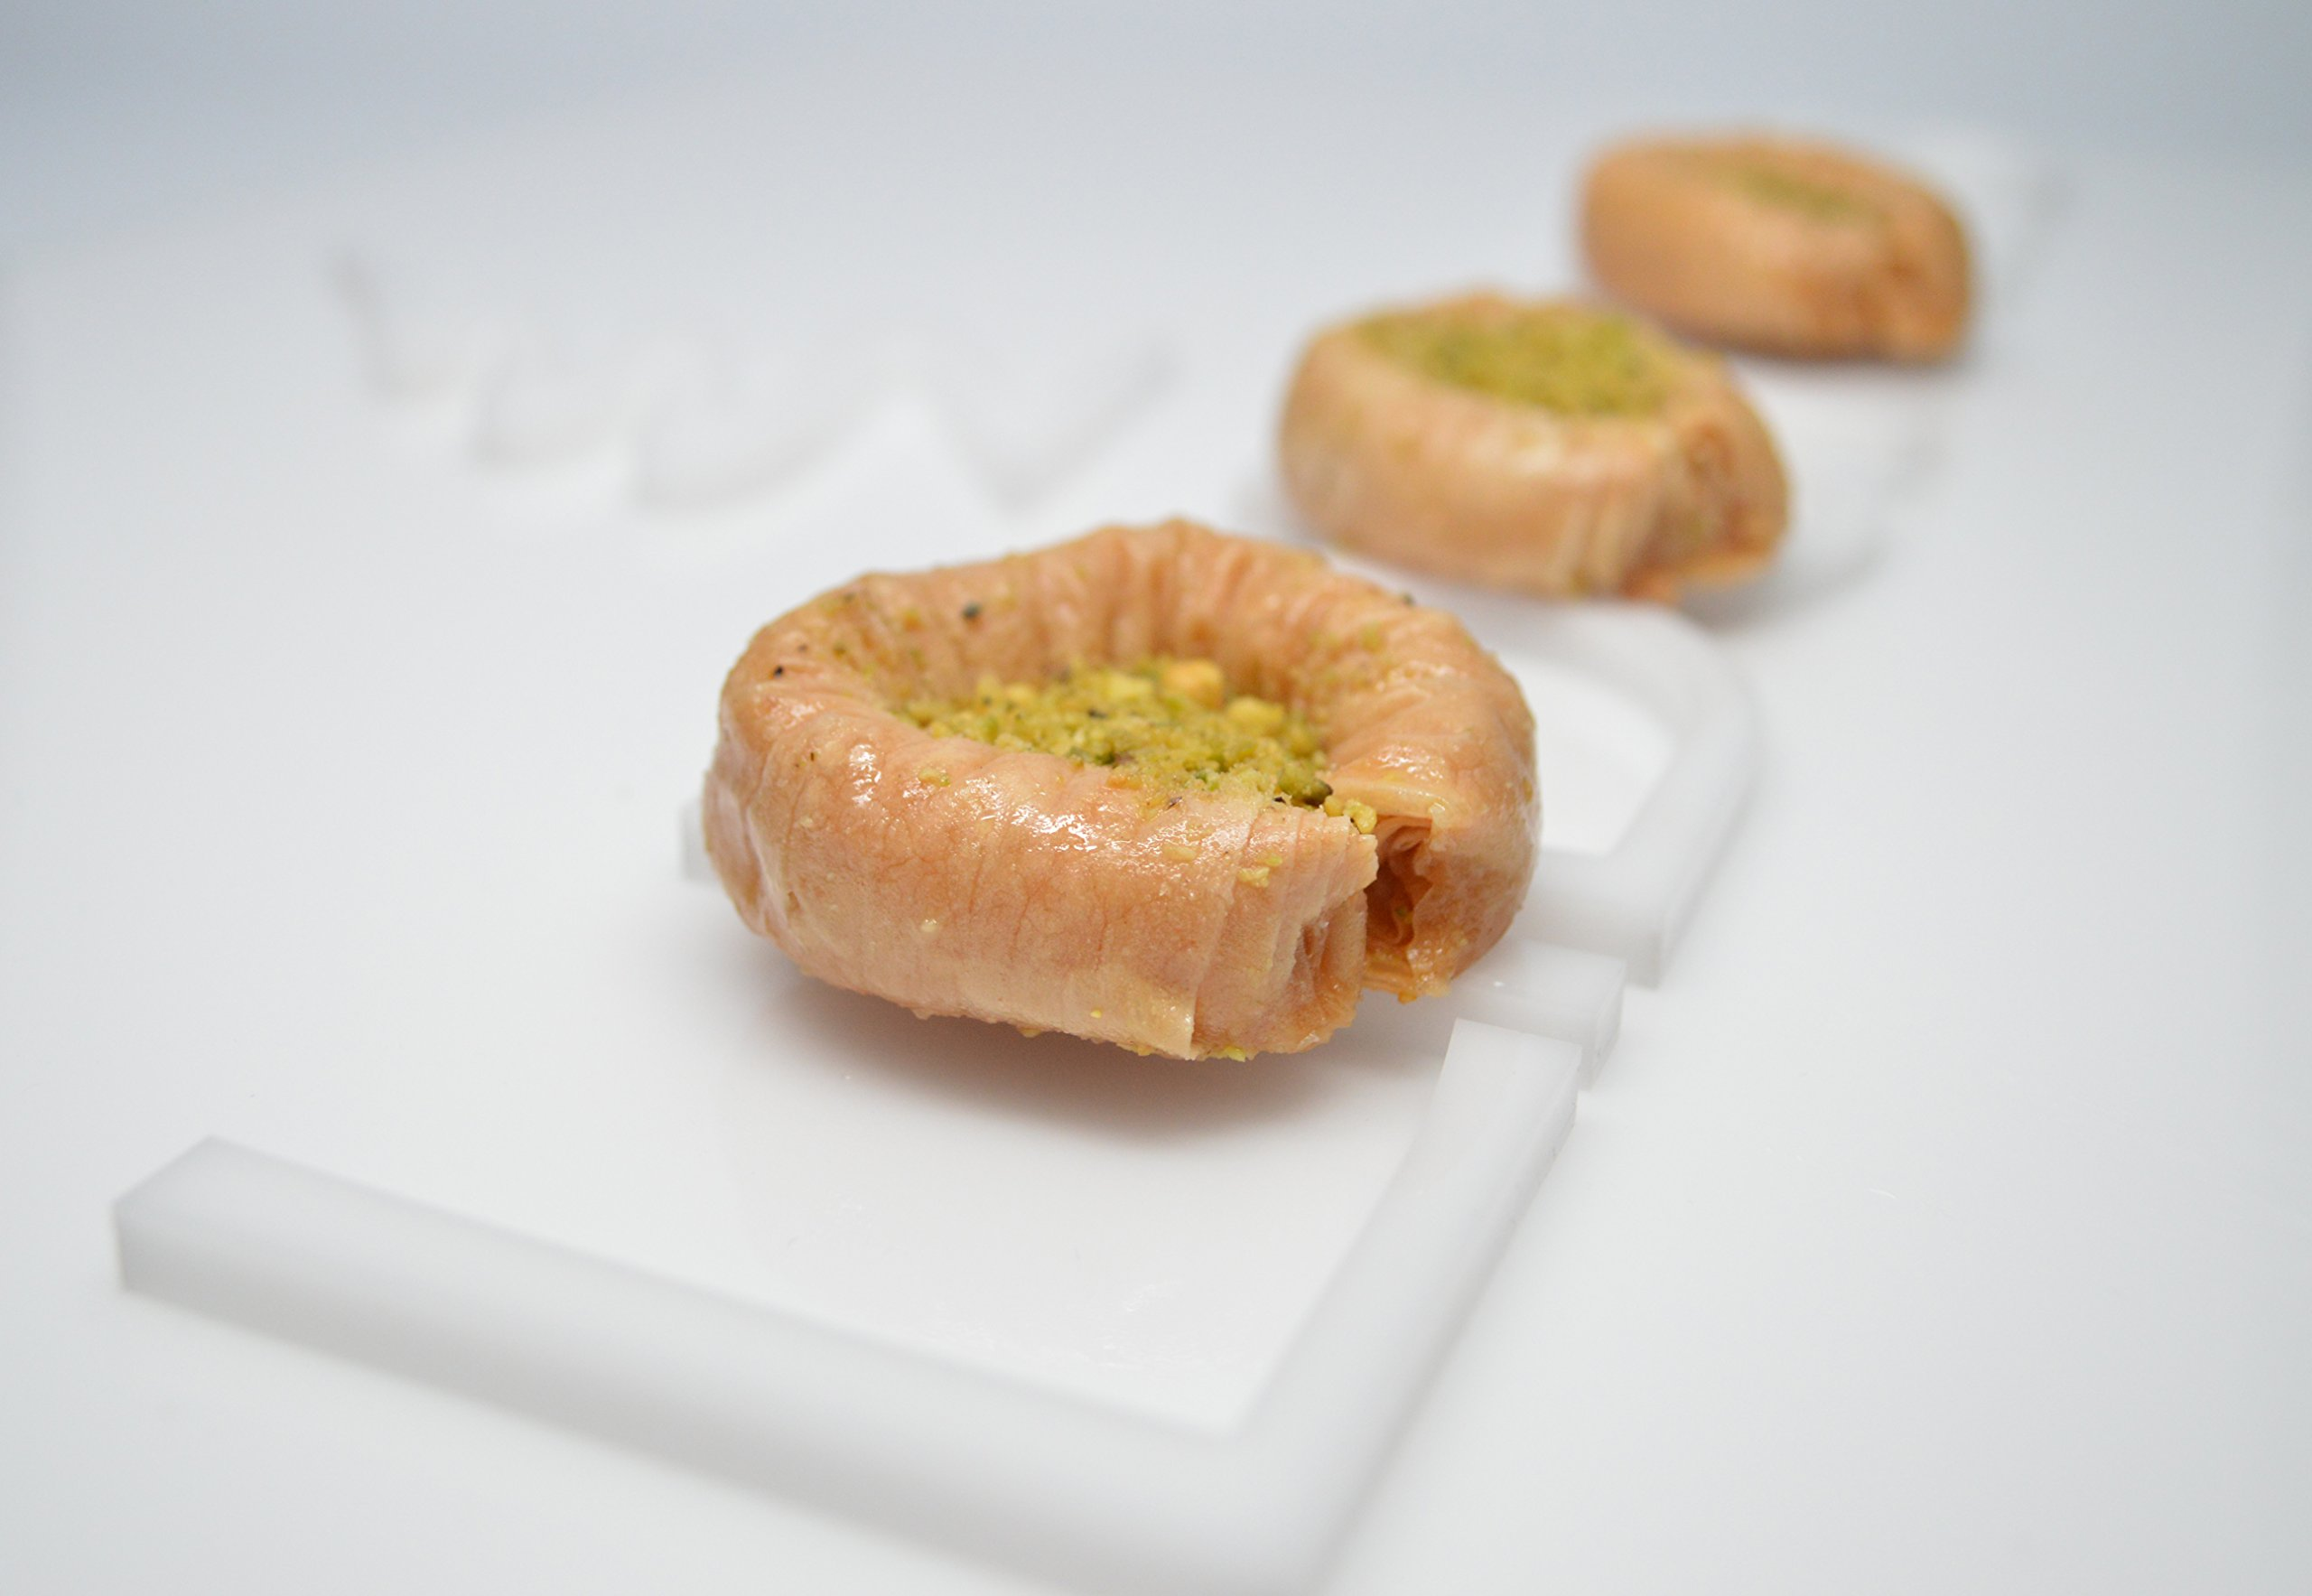 Baklava Assortment - 63 Pc. by Libanais (Image #2)